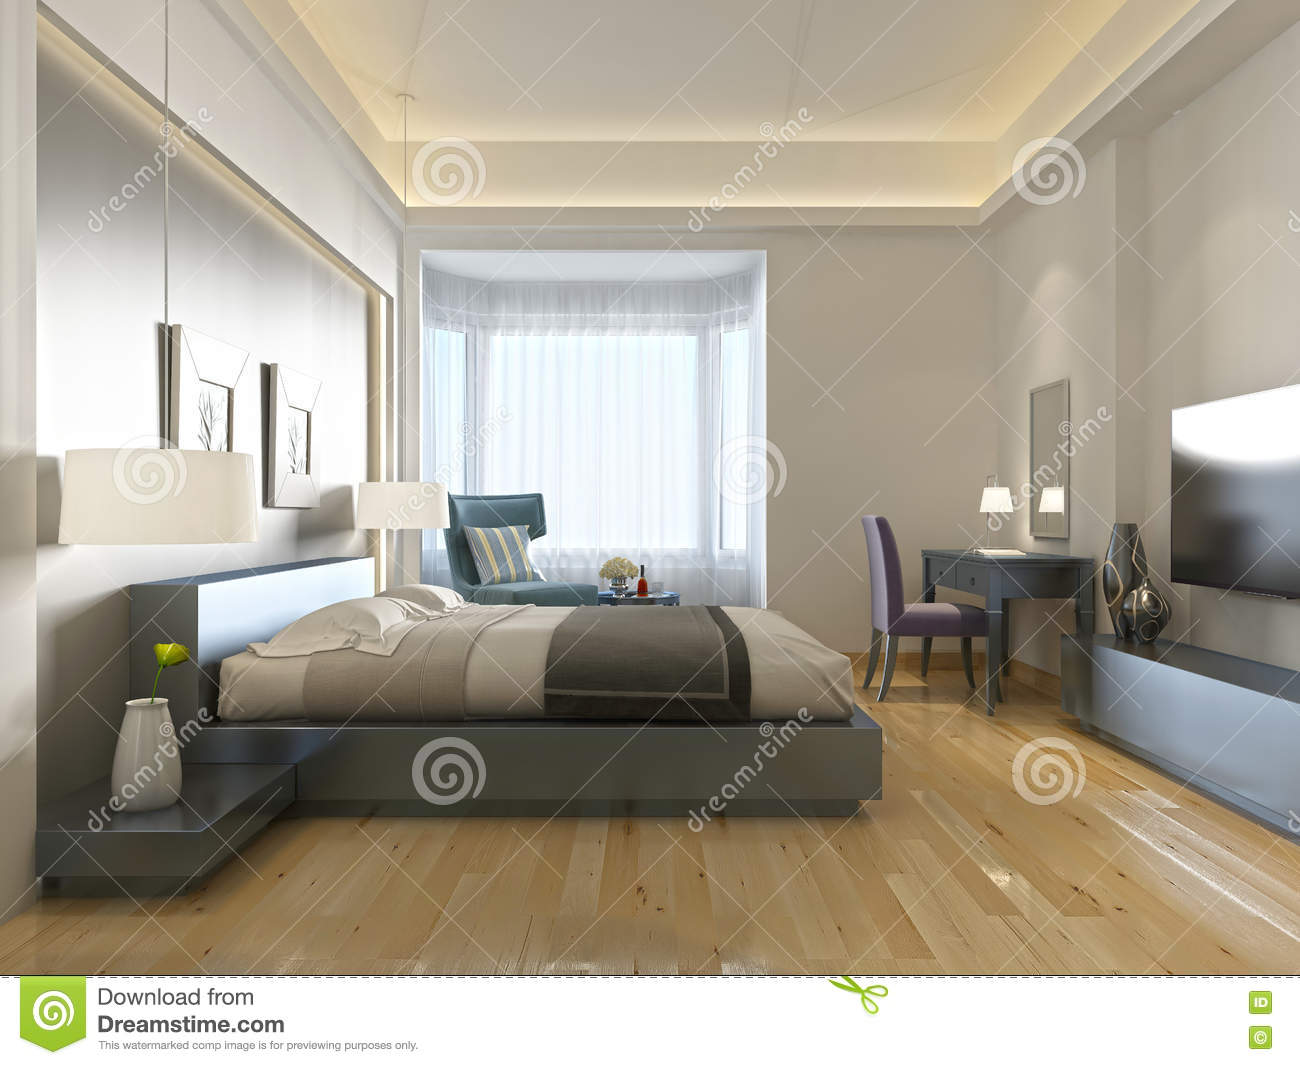 Modern hotel room contemporary style with elements of art deco